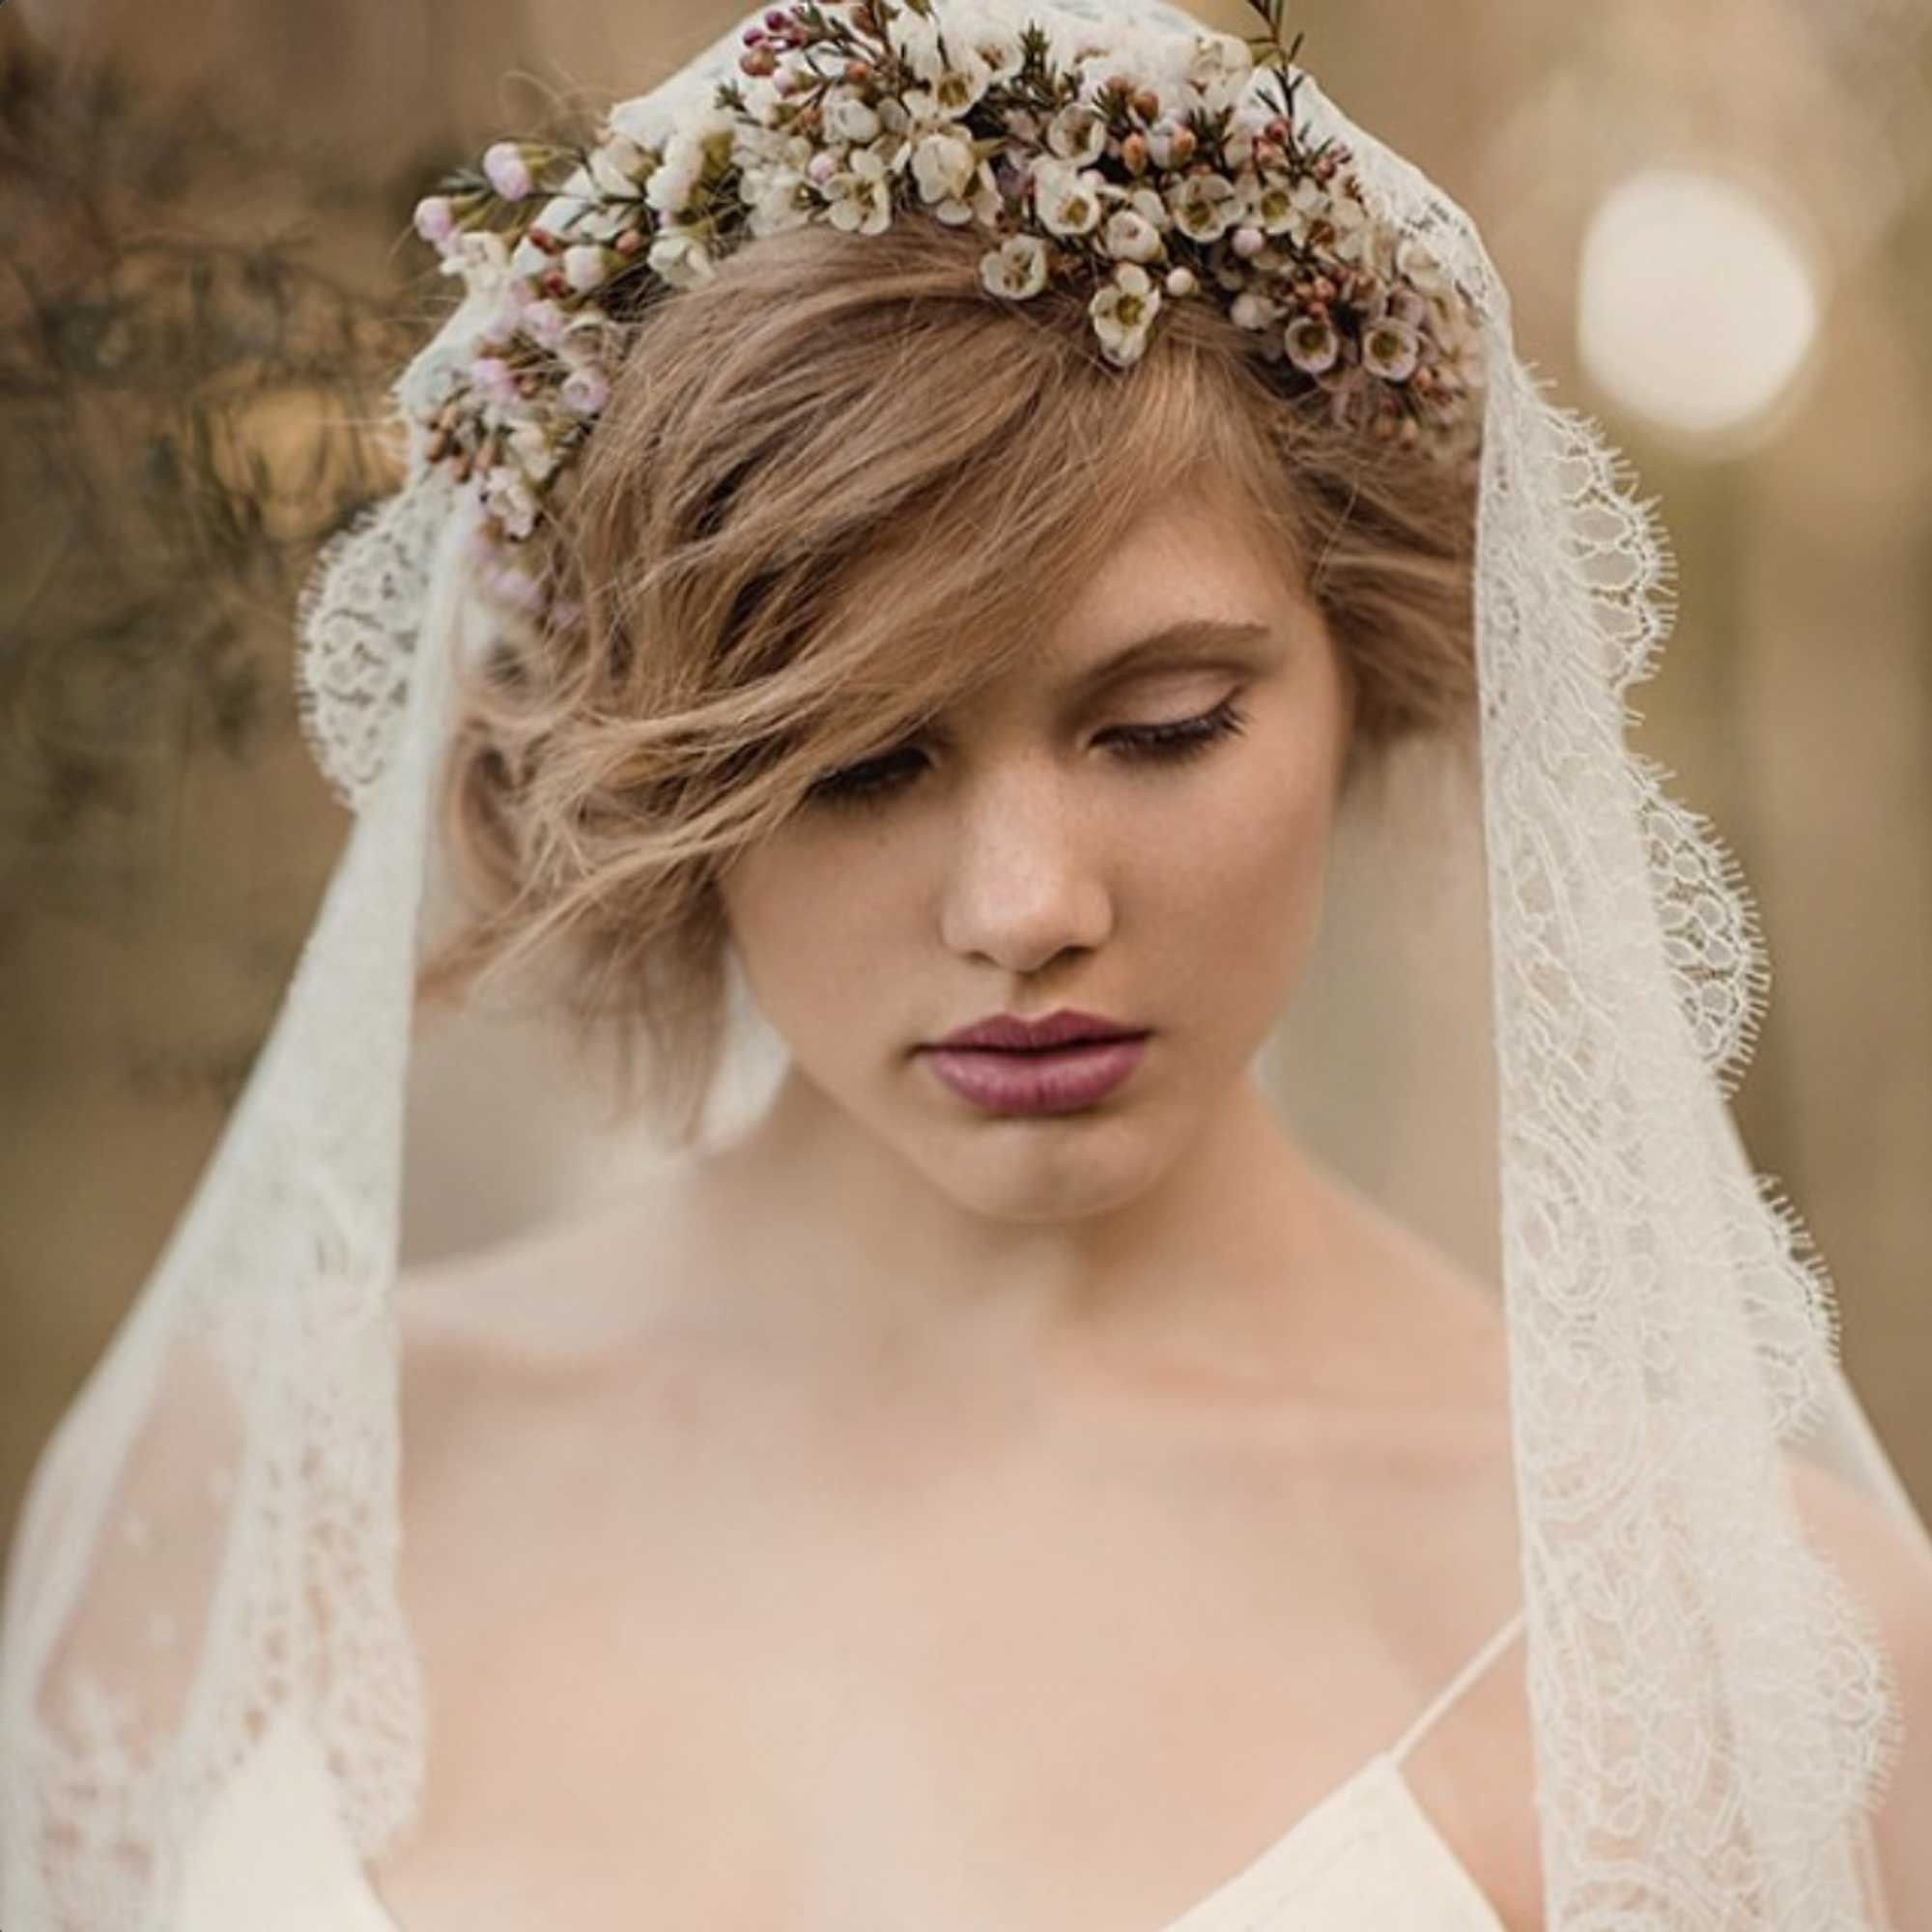 Mantilla Veil With Flower Crown 36 Stunning Wedding Veils That Will